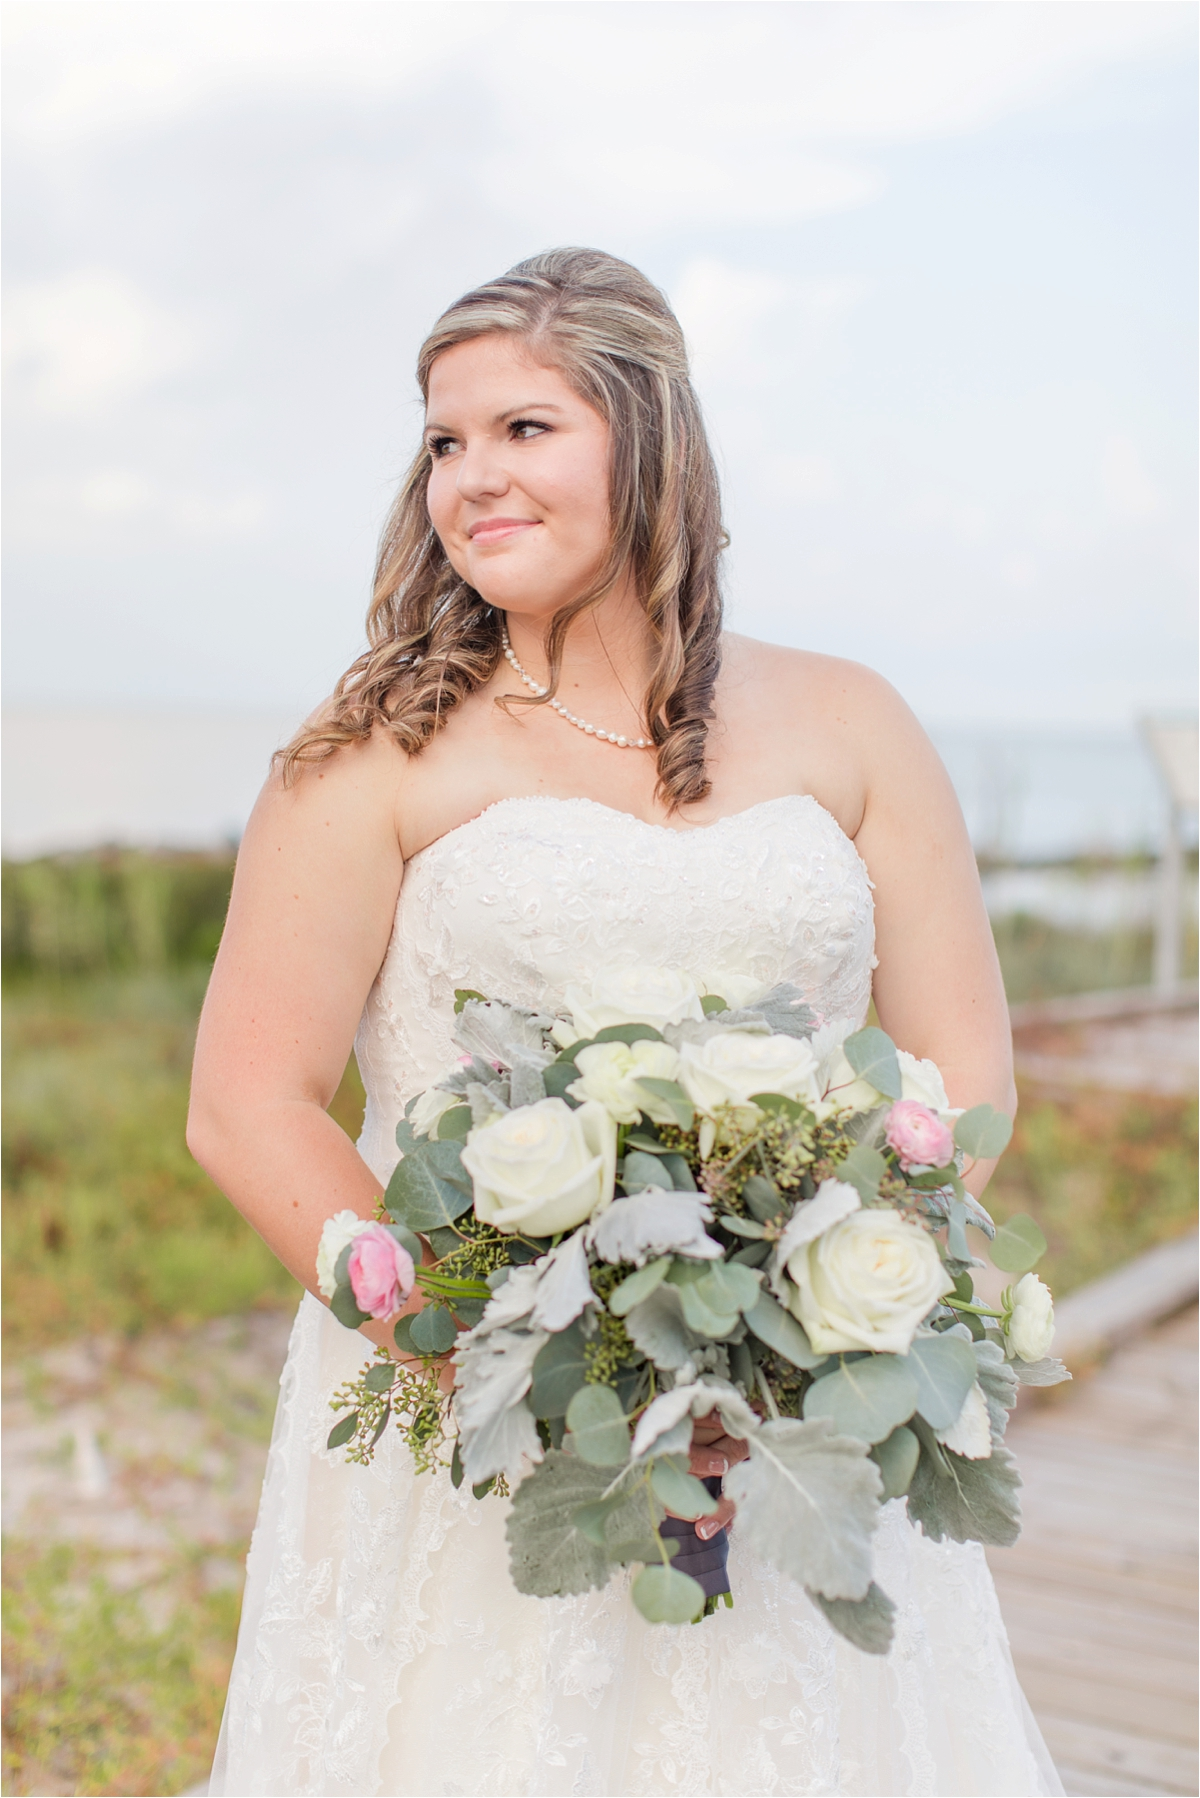 bridal-portraits-alabama-wedding-photographer-Dauphin Island Estuarium-on the beach-beach-bouquet-white-roses-pop of pink